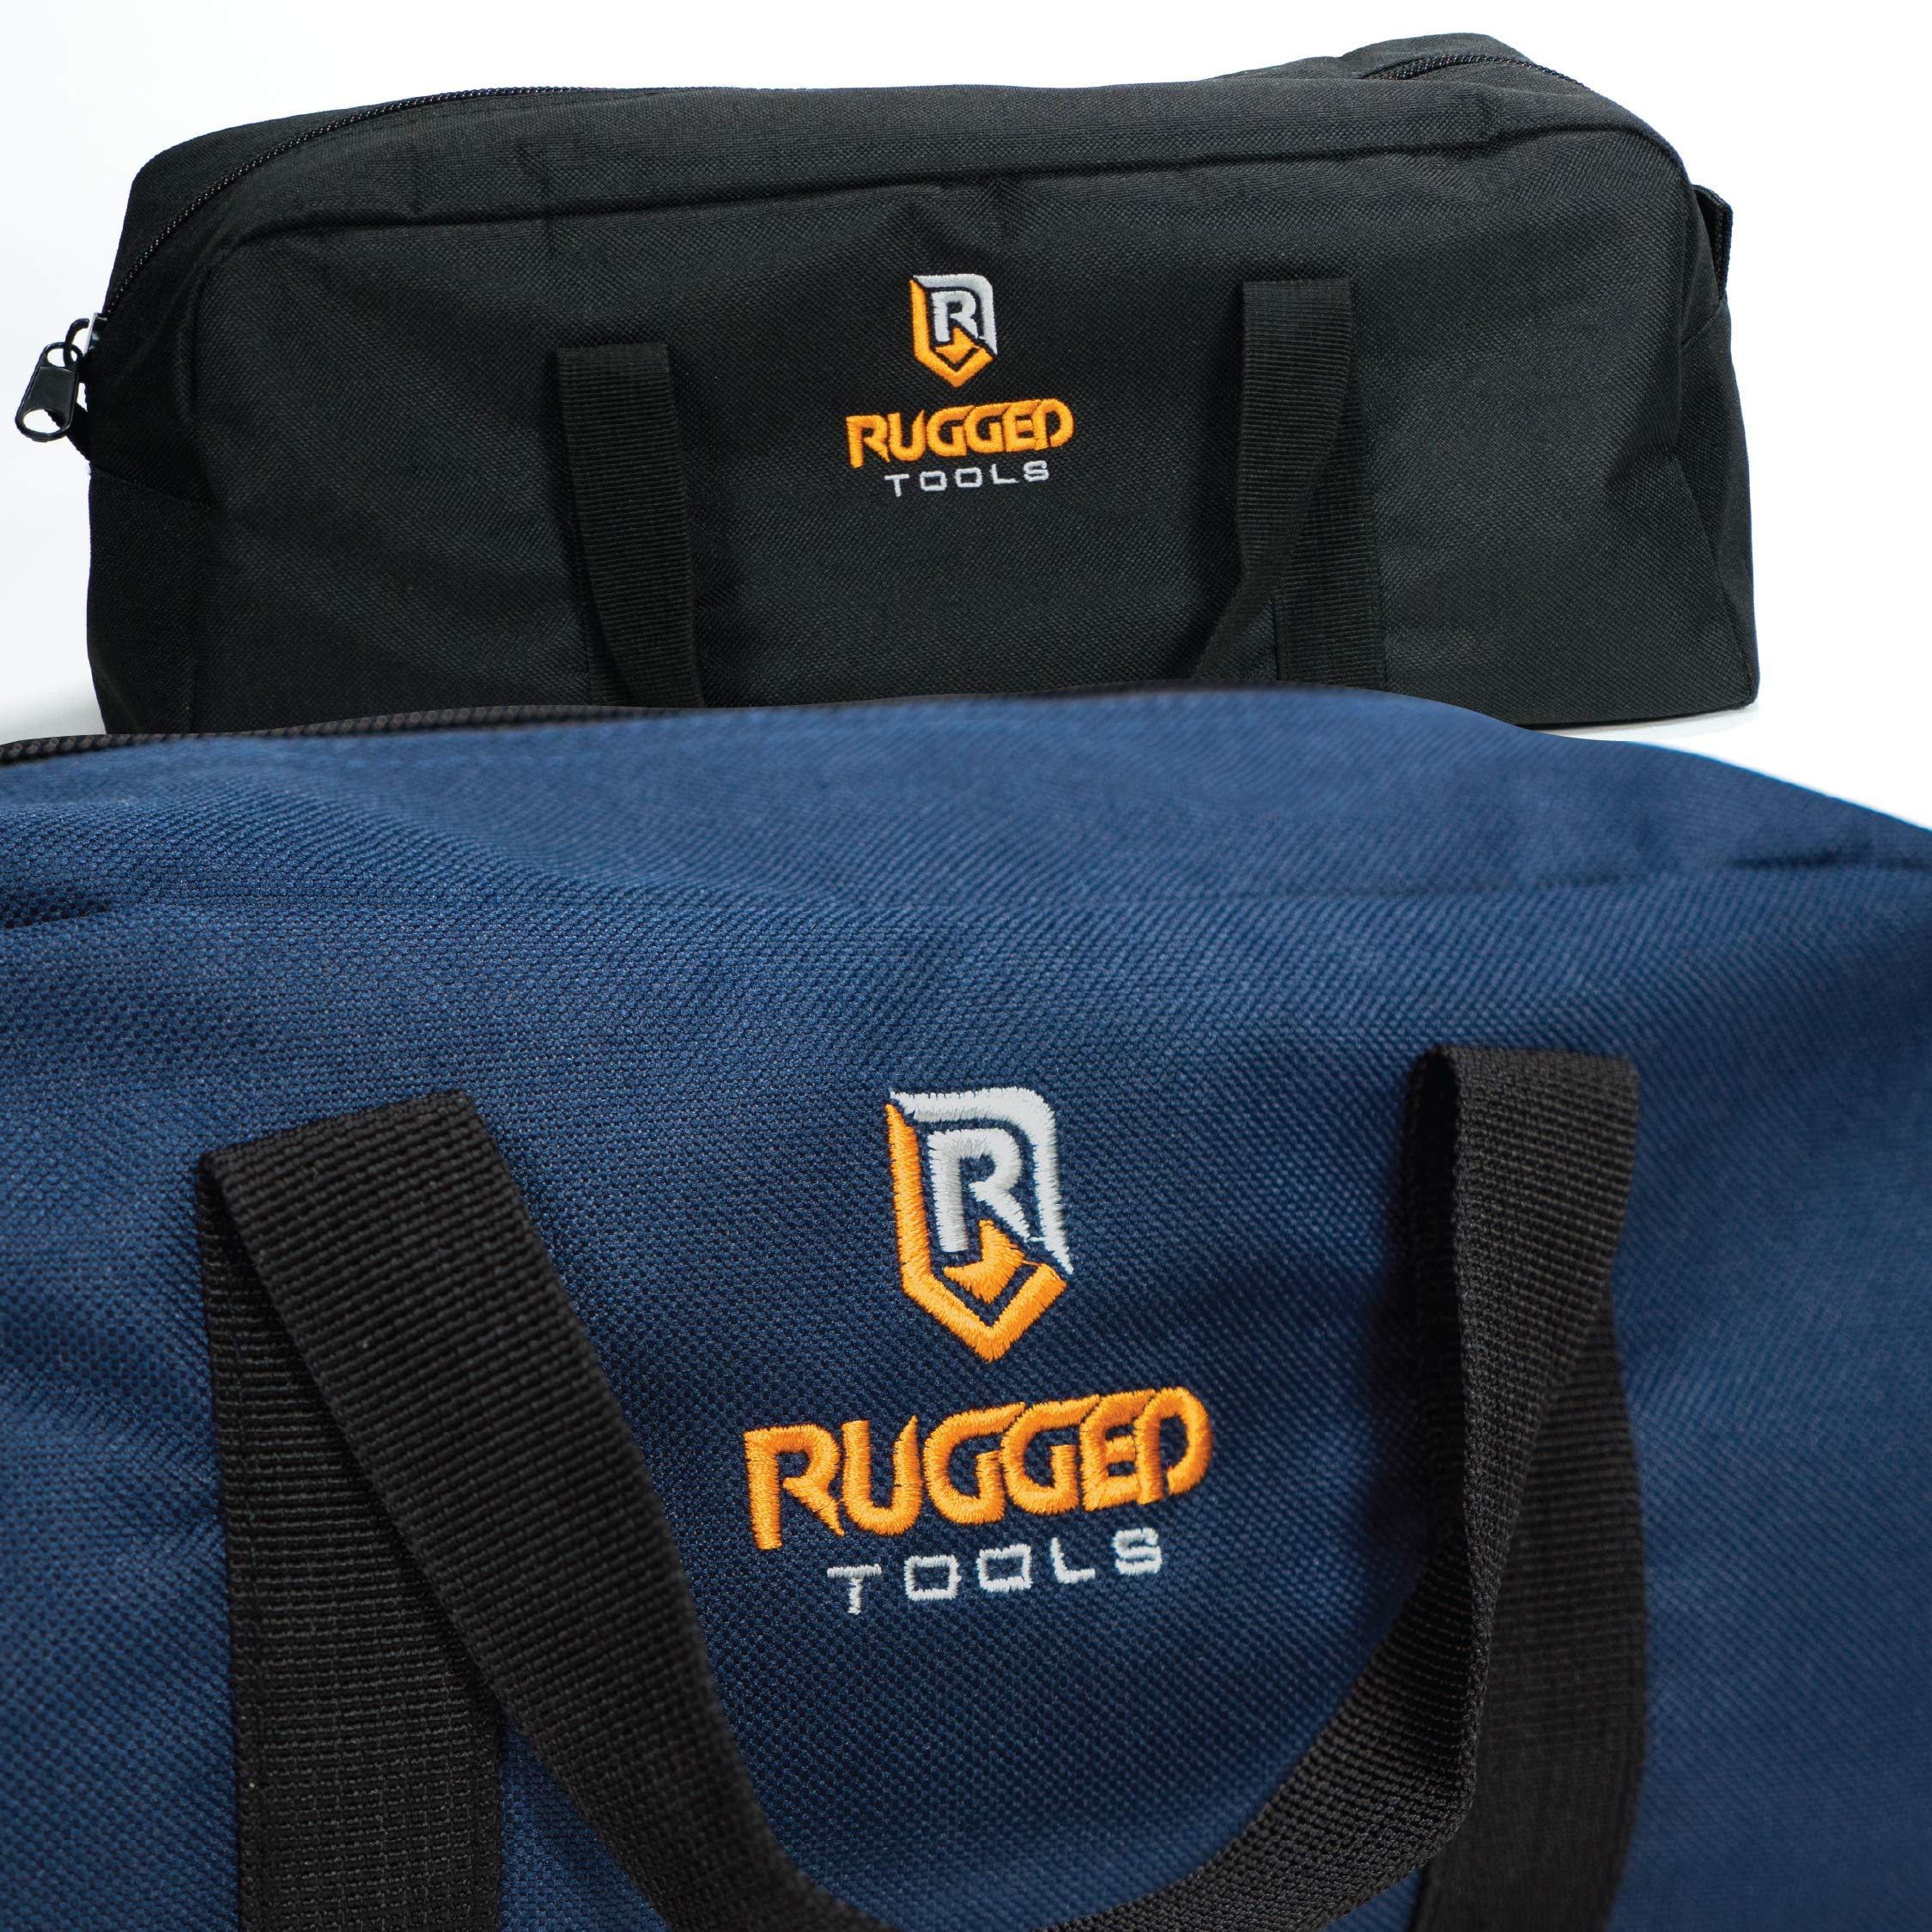 Rugged Tools Tool Bag Combo - Includes 1 Small & 1 Medium Toolbag - Organizer Tote Bags for Electrician, Plumbing, Gardening, HVAC & More by Rugged Tools (Image #3)